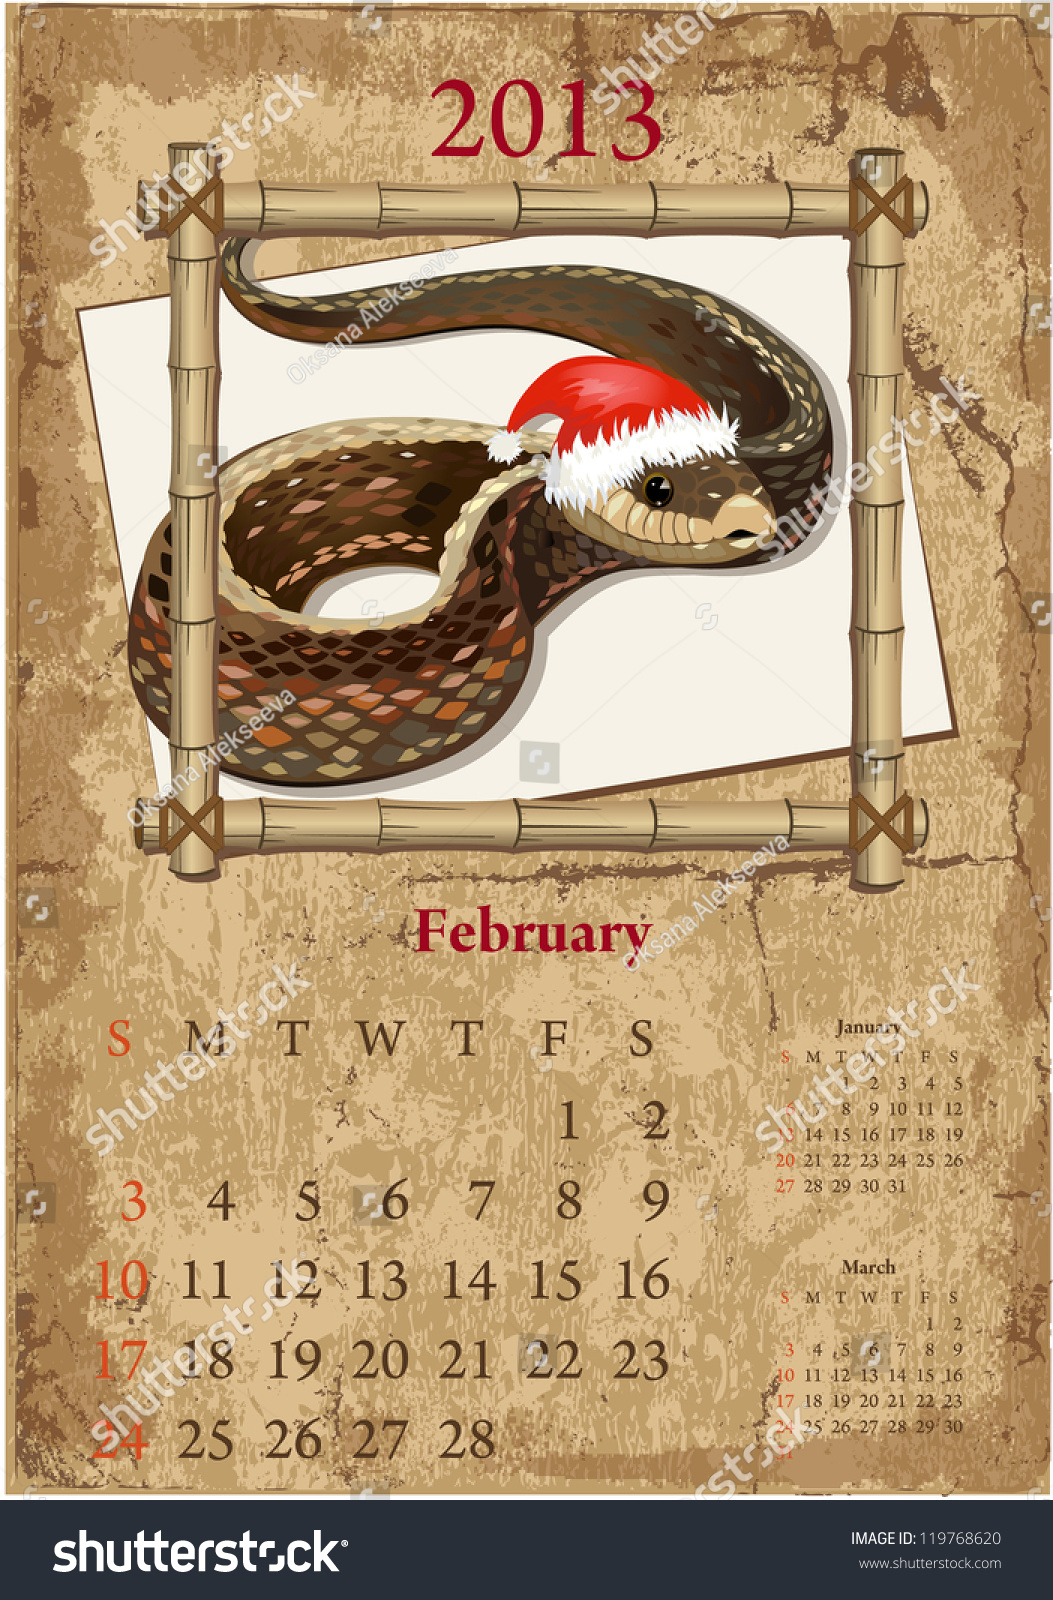 Vintage Chinese Calendar : Vintage chinese style calendar for february stock